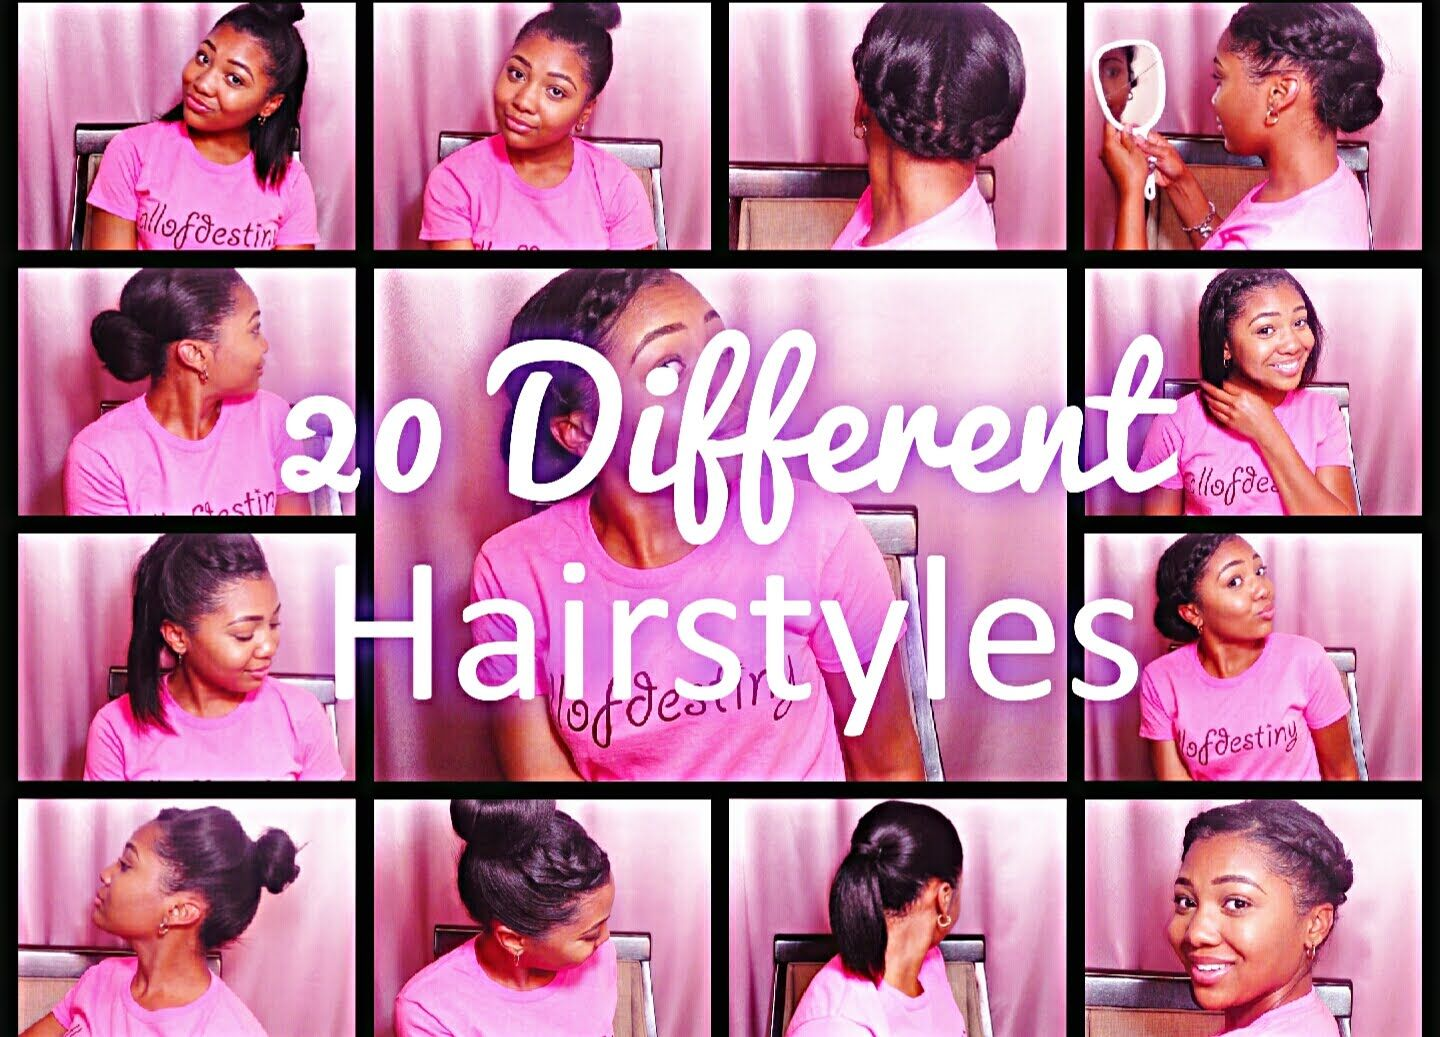 20 hairstyles for straight dirty relaxed hair relaxed hair heres 20 different hairstyles for your straight boring dirty relaxed or natural hair ponytails braided updos buns half up half down hairstlyes pmusecretfo Gallery